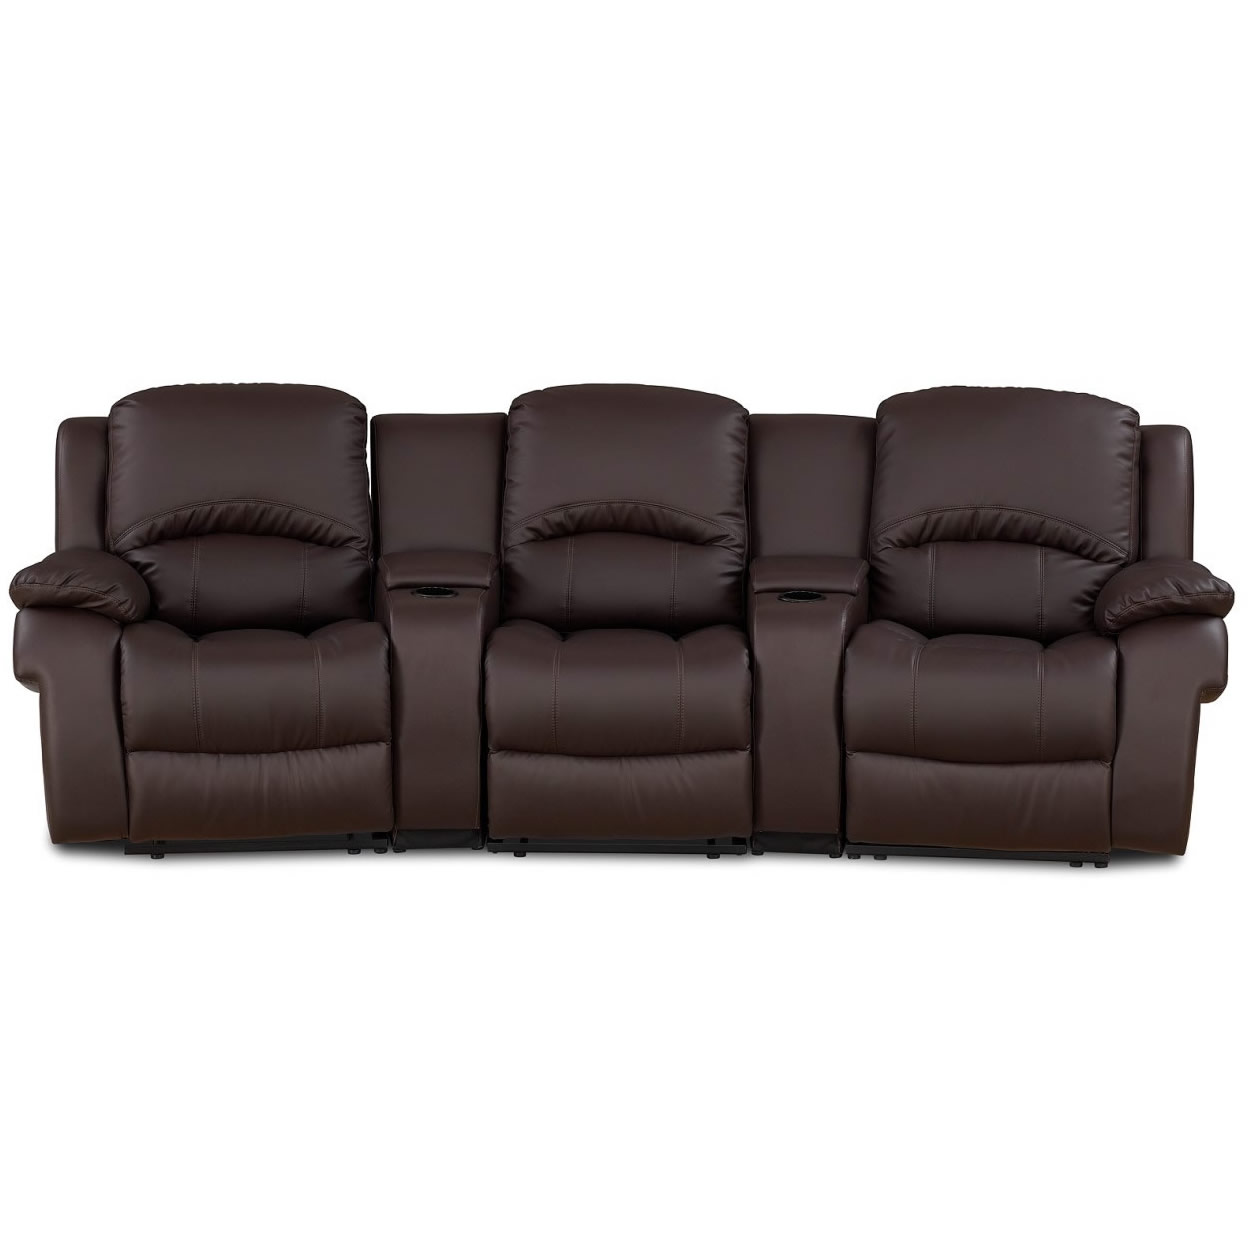 Leather sectional sofa bed recliner